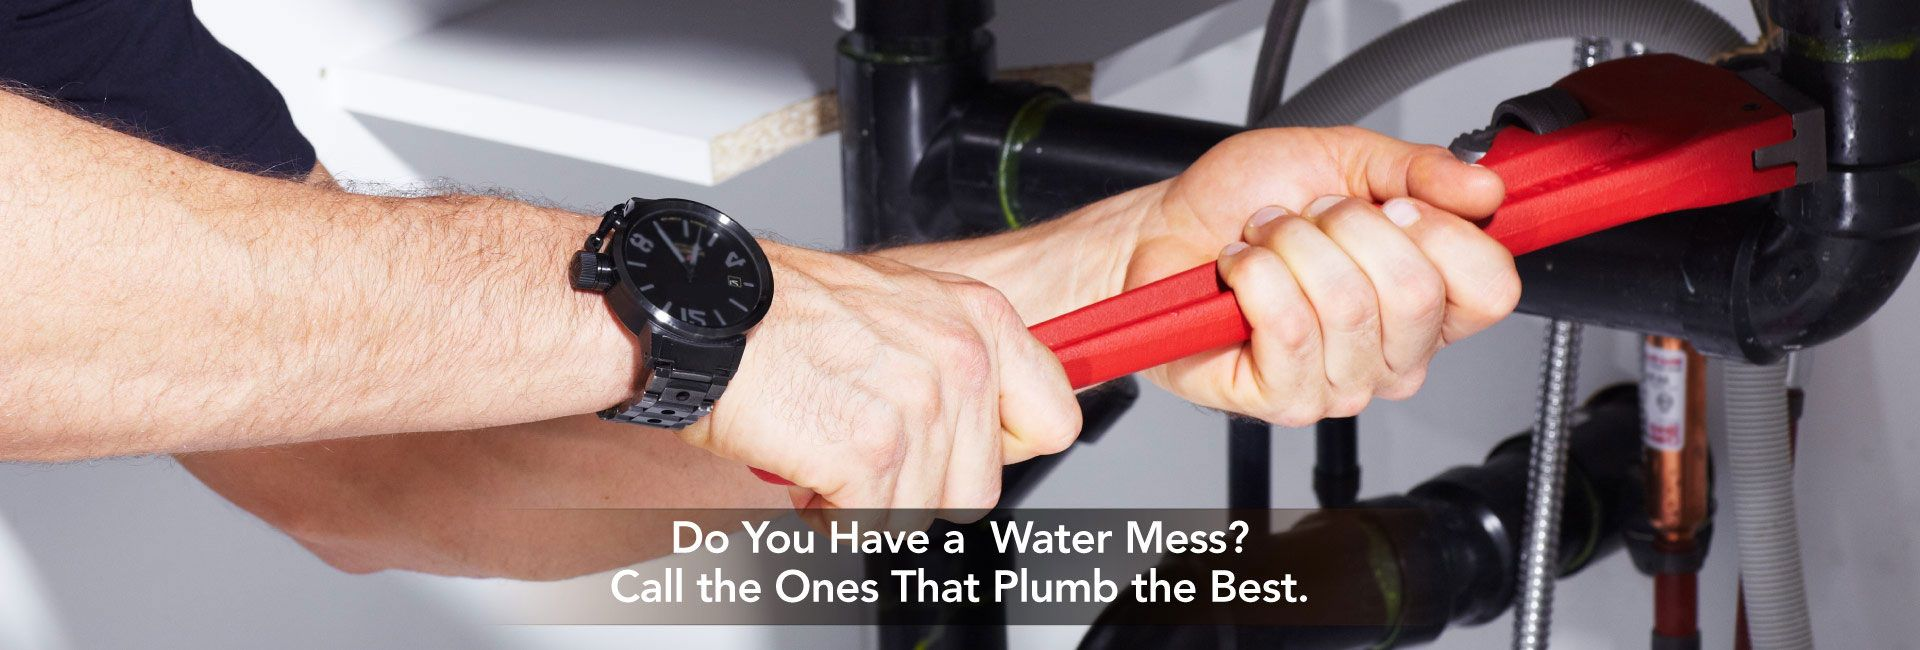 Do You Have a Water Mess? Call the Ones That Plumb the Best. | Hands of professional Plumber with a wrench